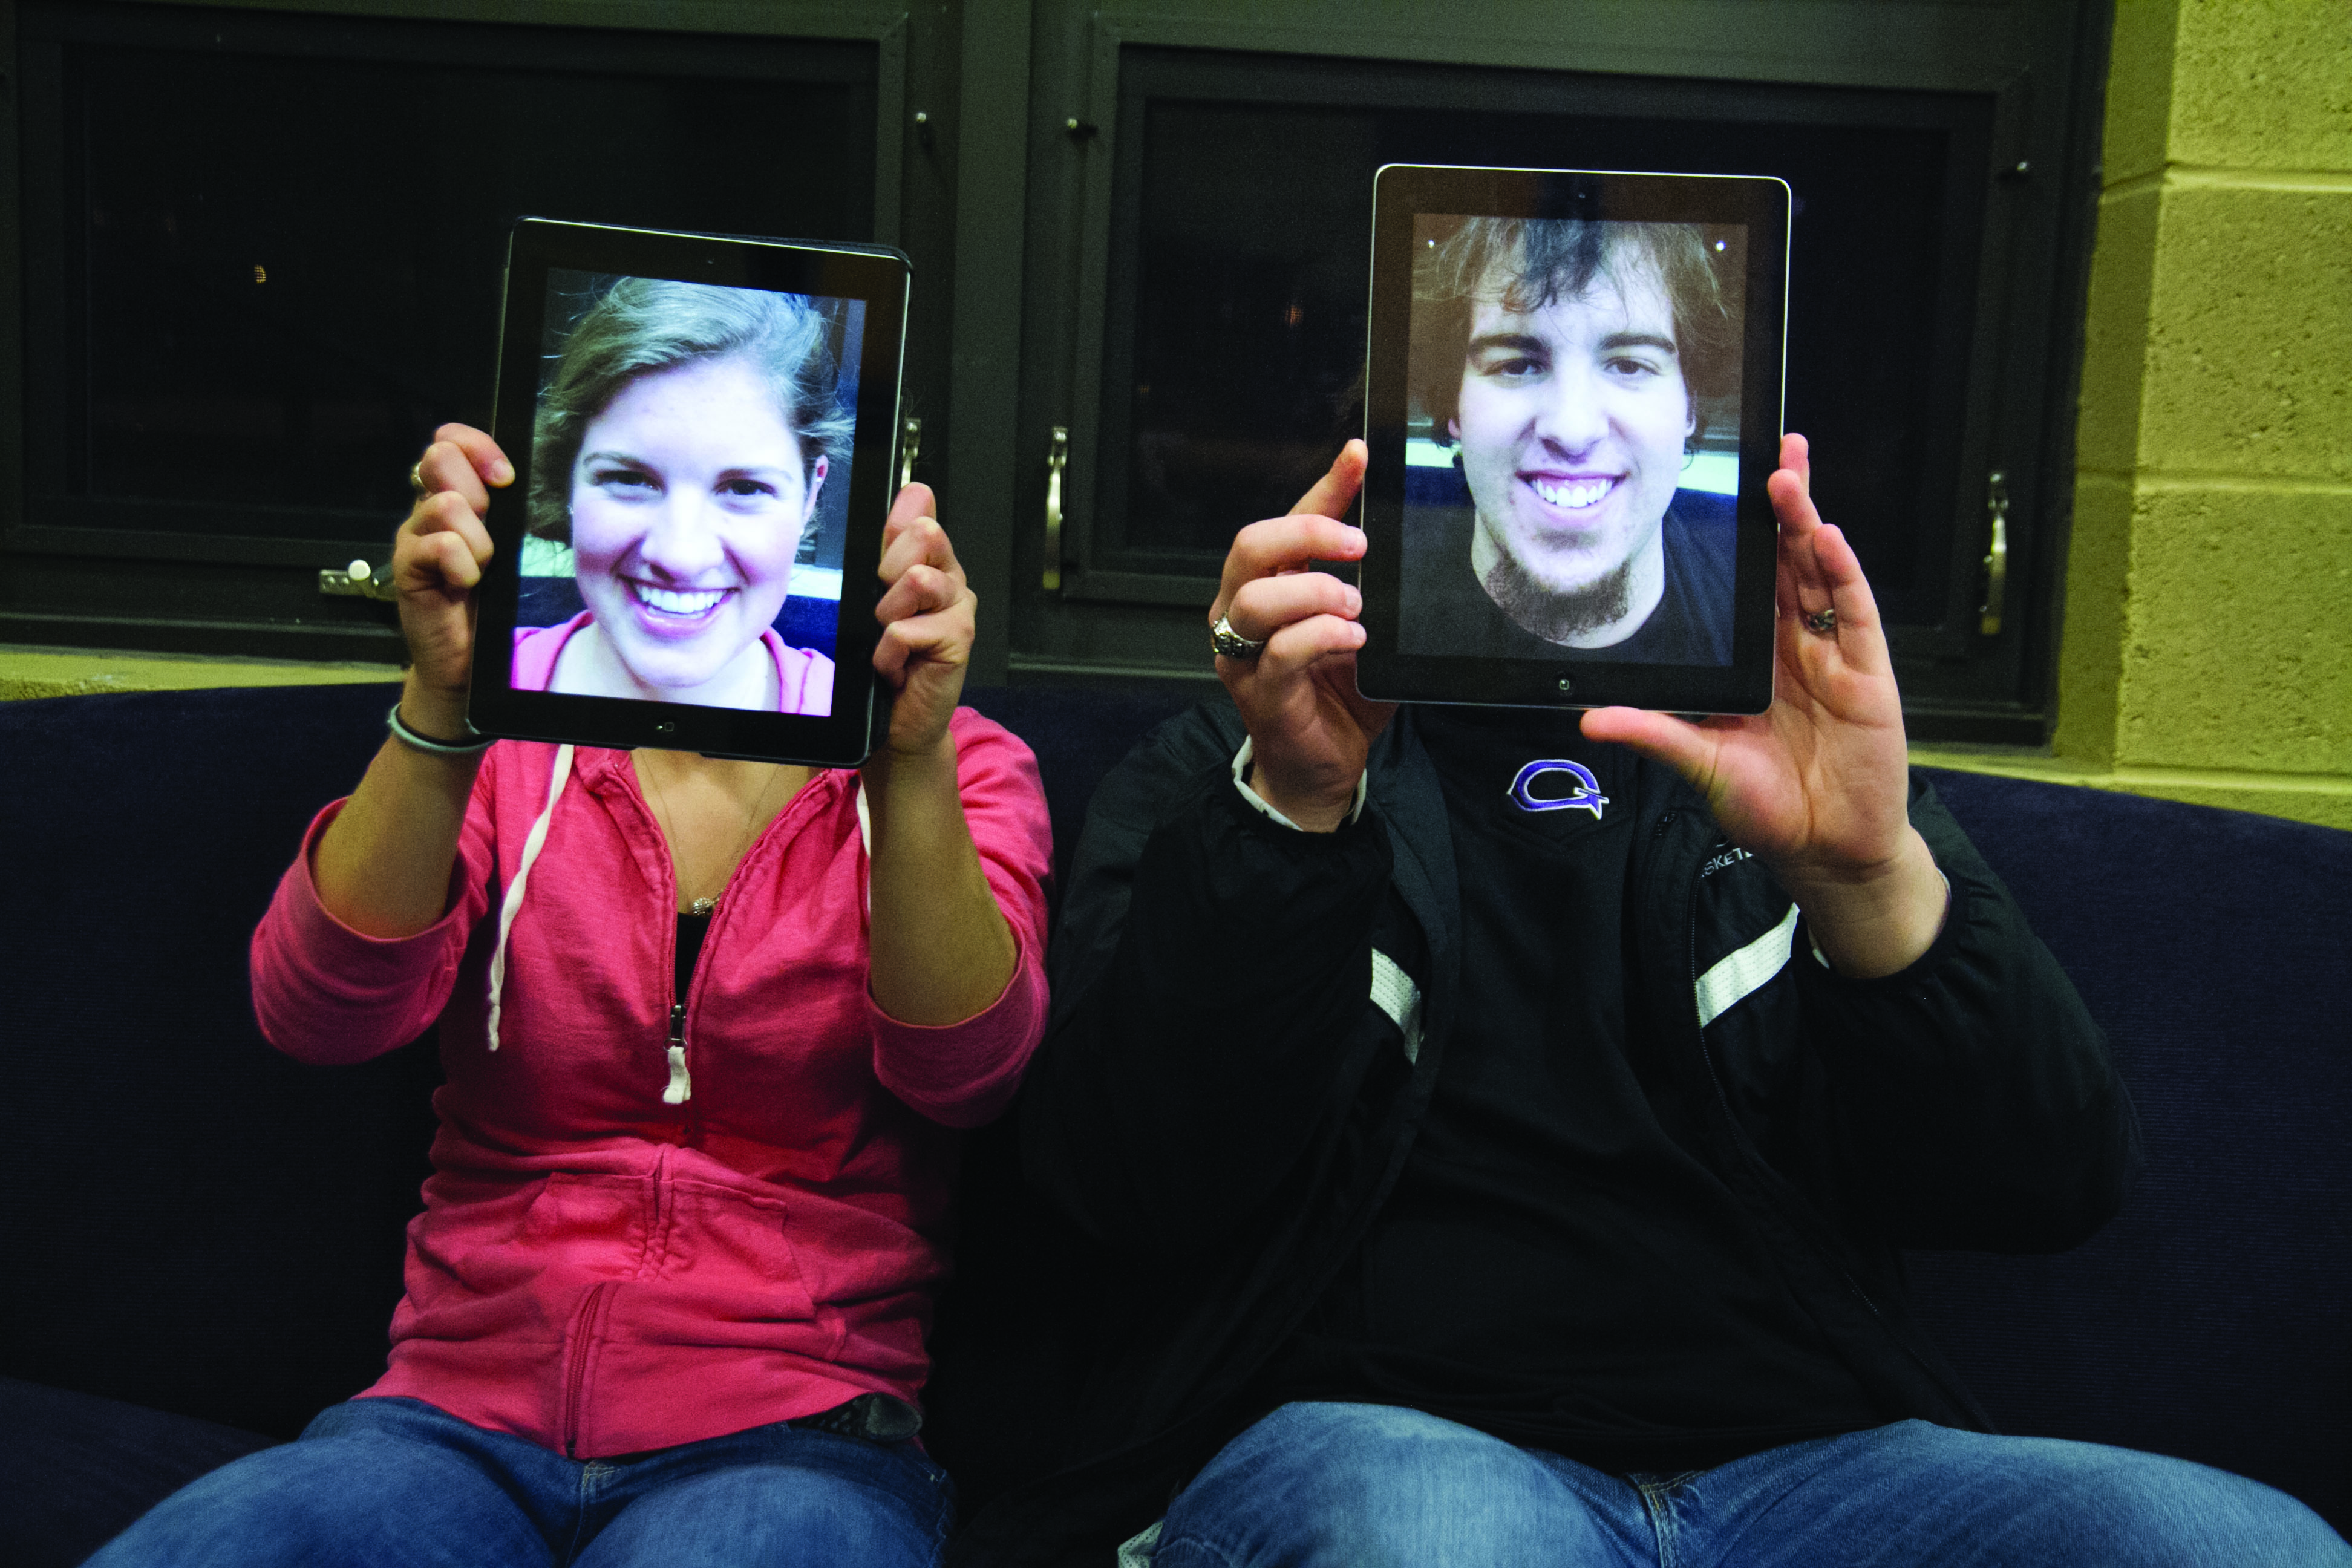 Two students cover their faces with pictures of themselves on their iPads